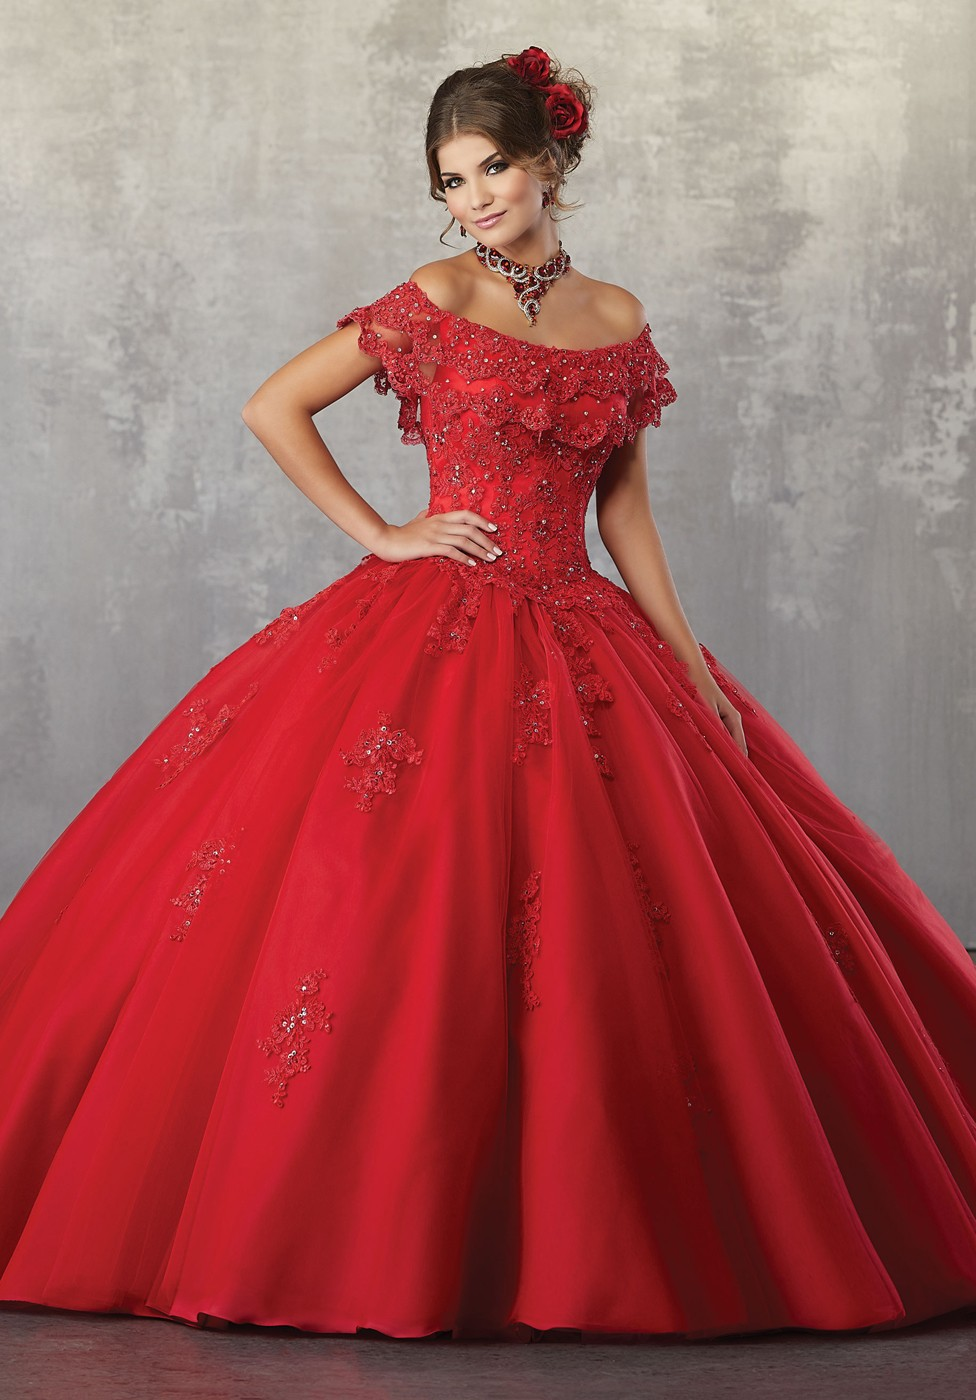 Fashion week Dresses quince red for girls